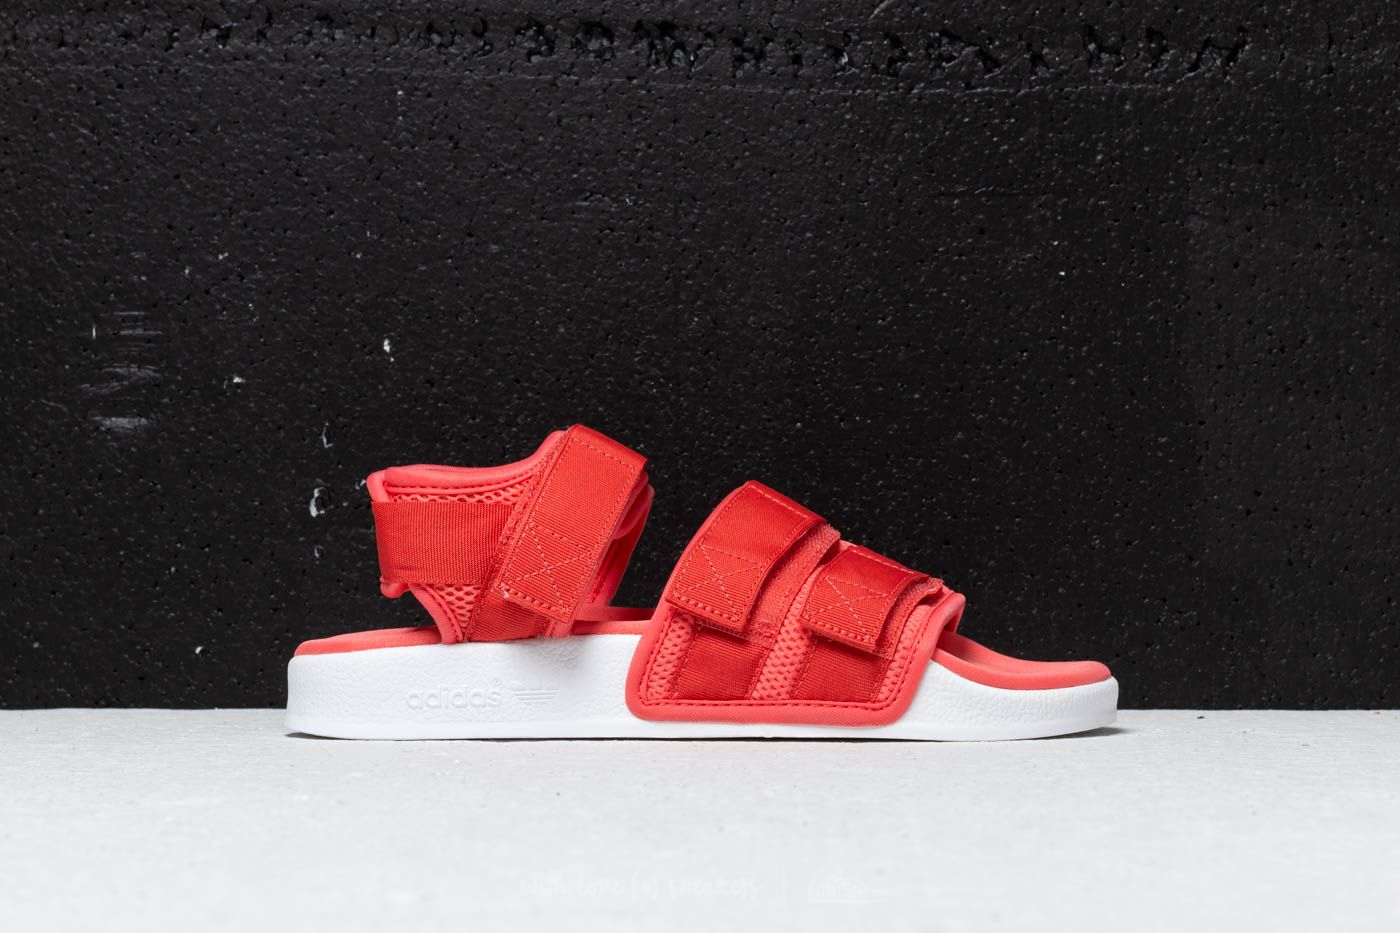 35c36cf9805e adidas Adilette Sandal 2.0 W Trace Scarlet  Ftw White  Ftw White at a great